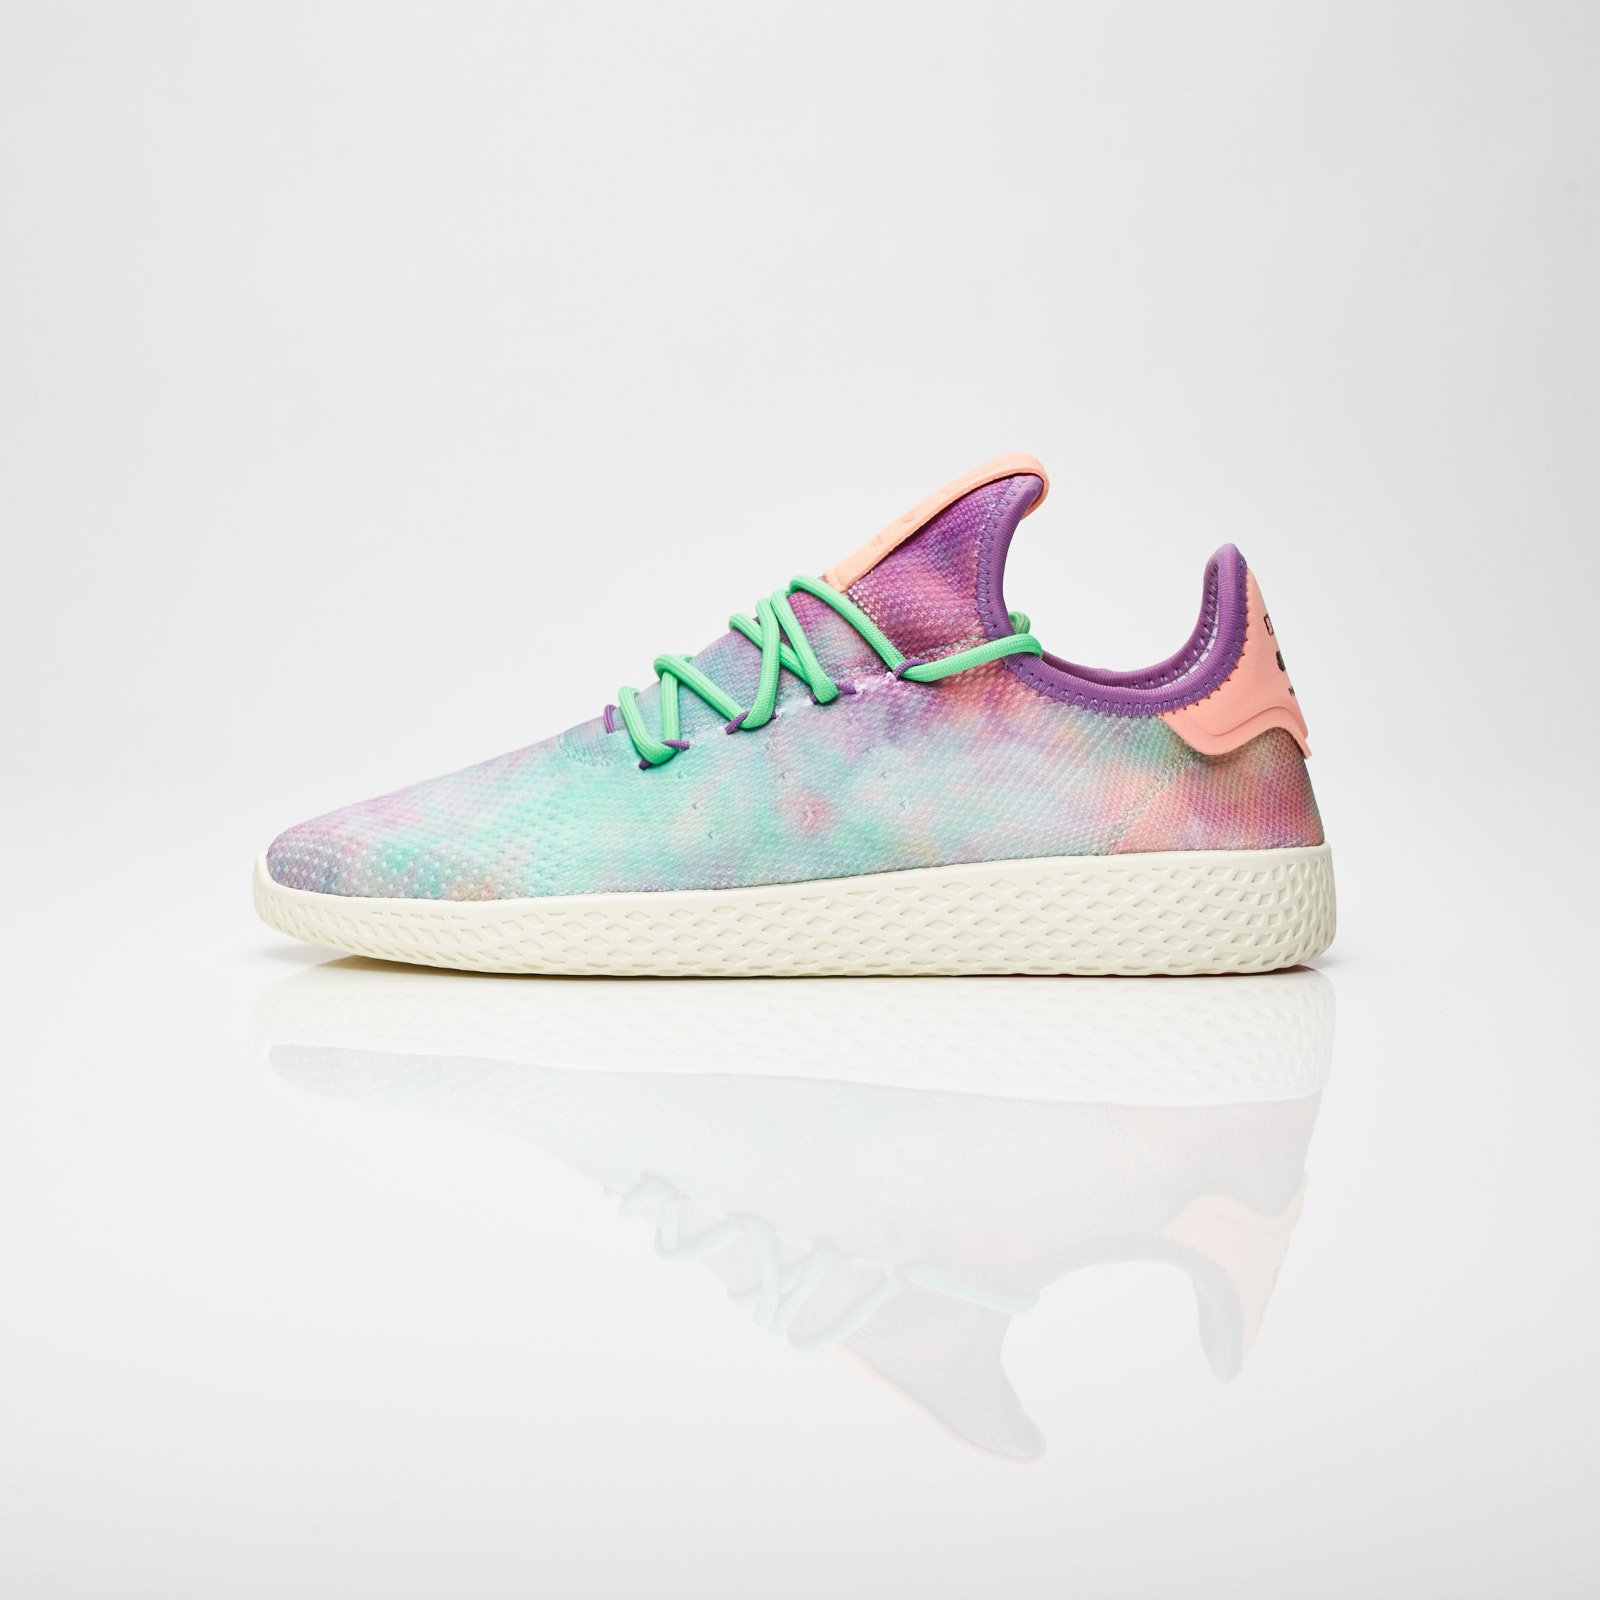 cheap for discount acaf2 df008 adidas Pharrell Williams HU Holi Tennis Hu MC - Ac7366 - Sneakersnstuff    sneakers   streetwear online since 1999